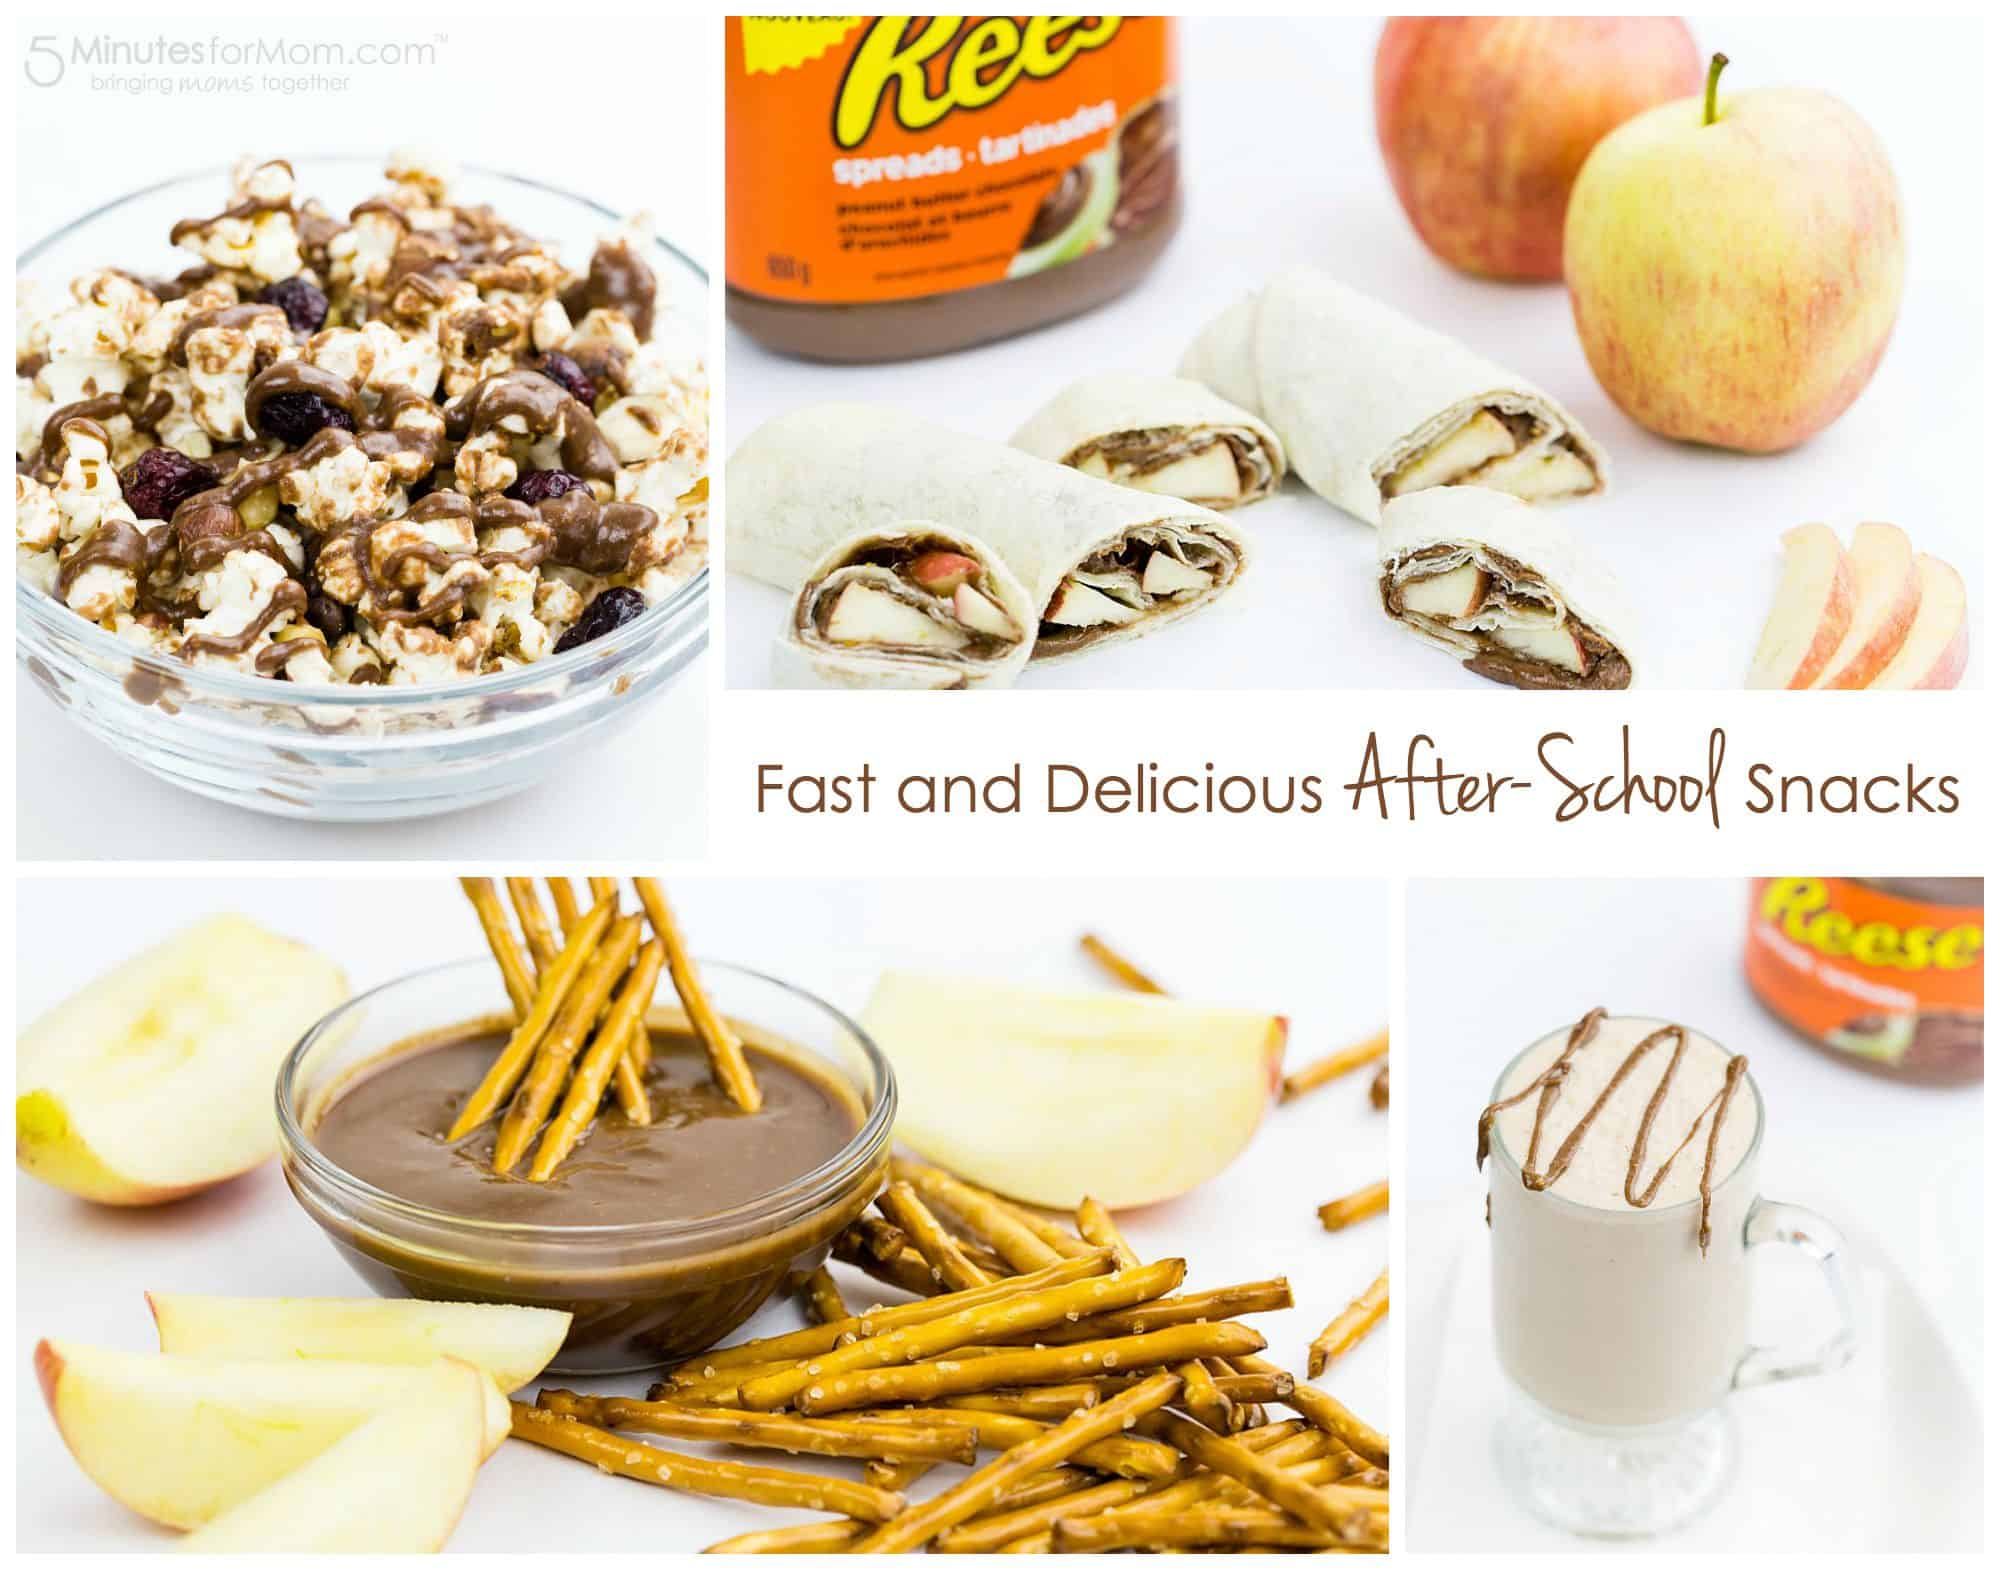 Fast and Delicious After School Snacks